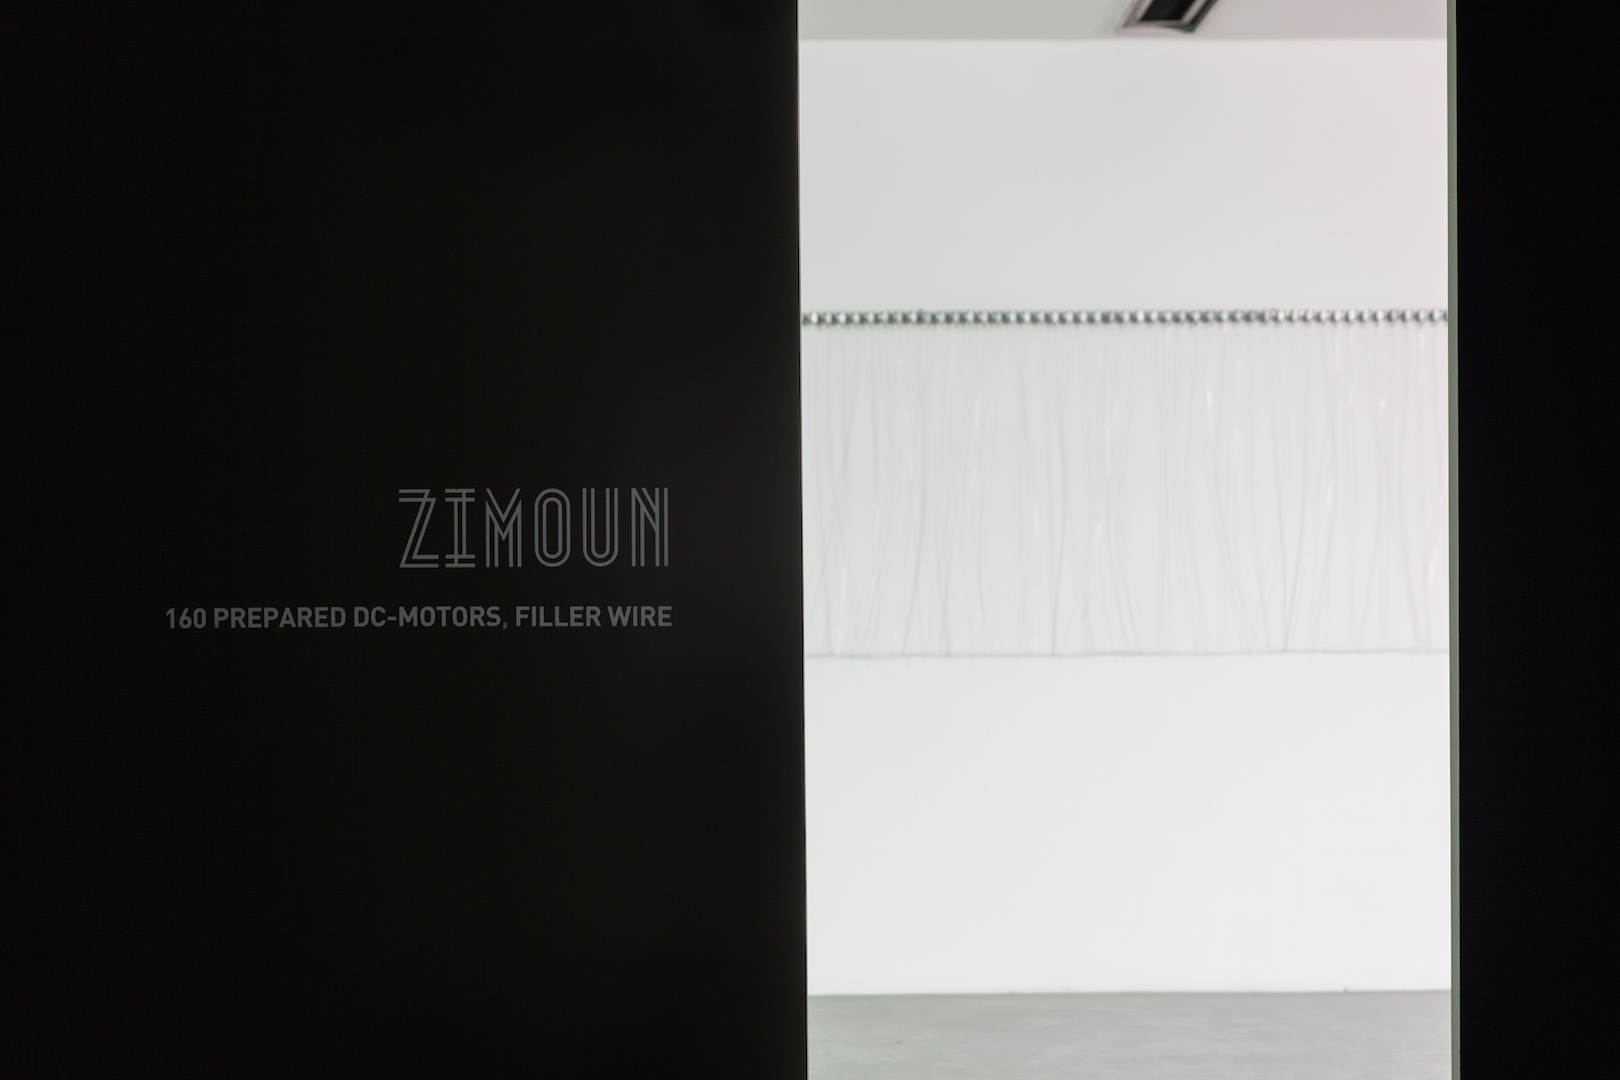 Zimoun-5335-Edit.jpg